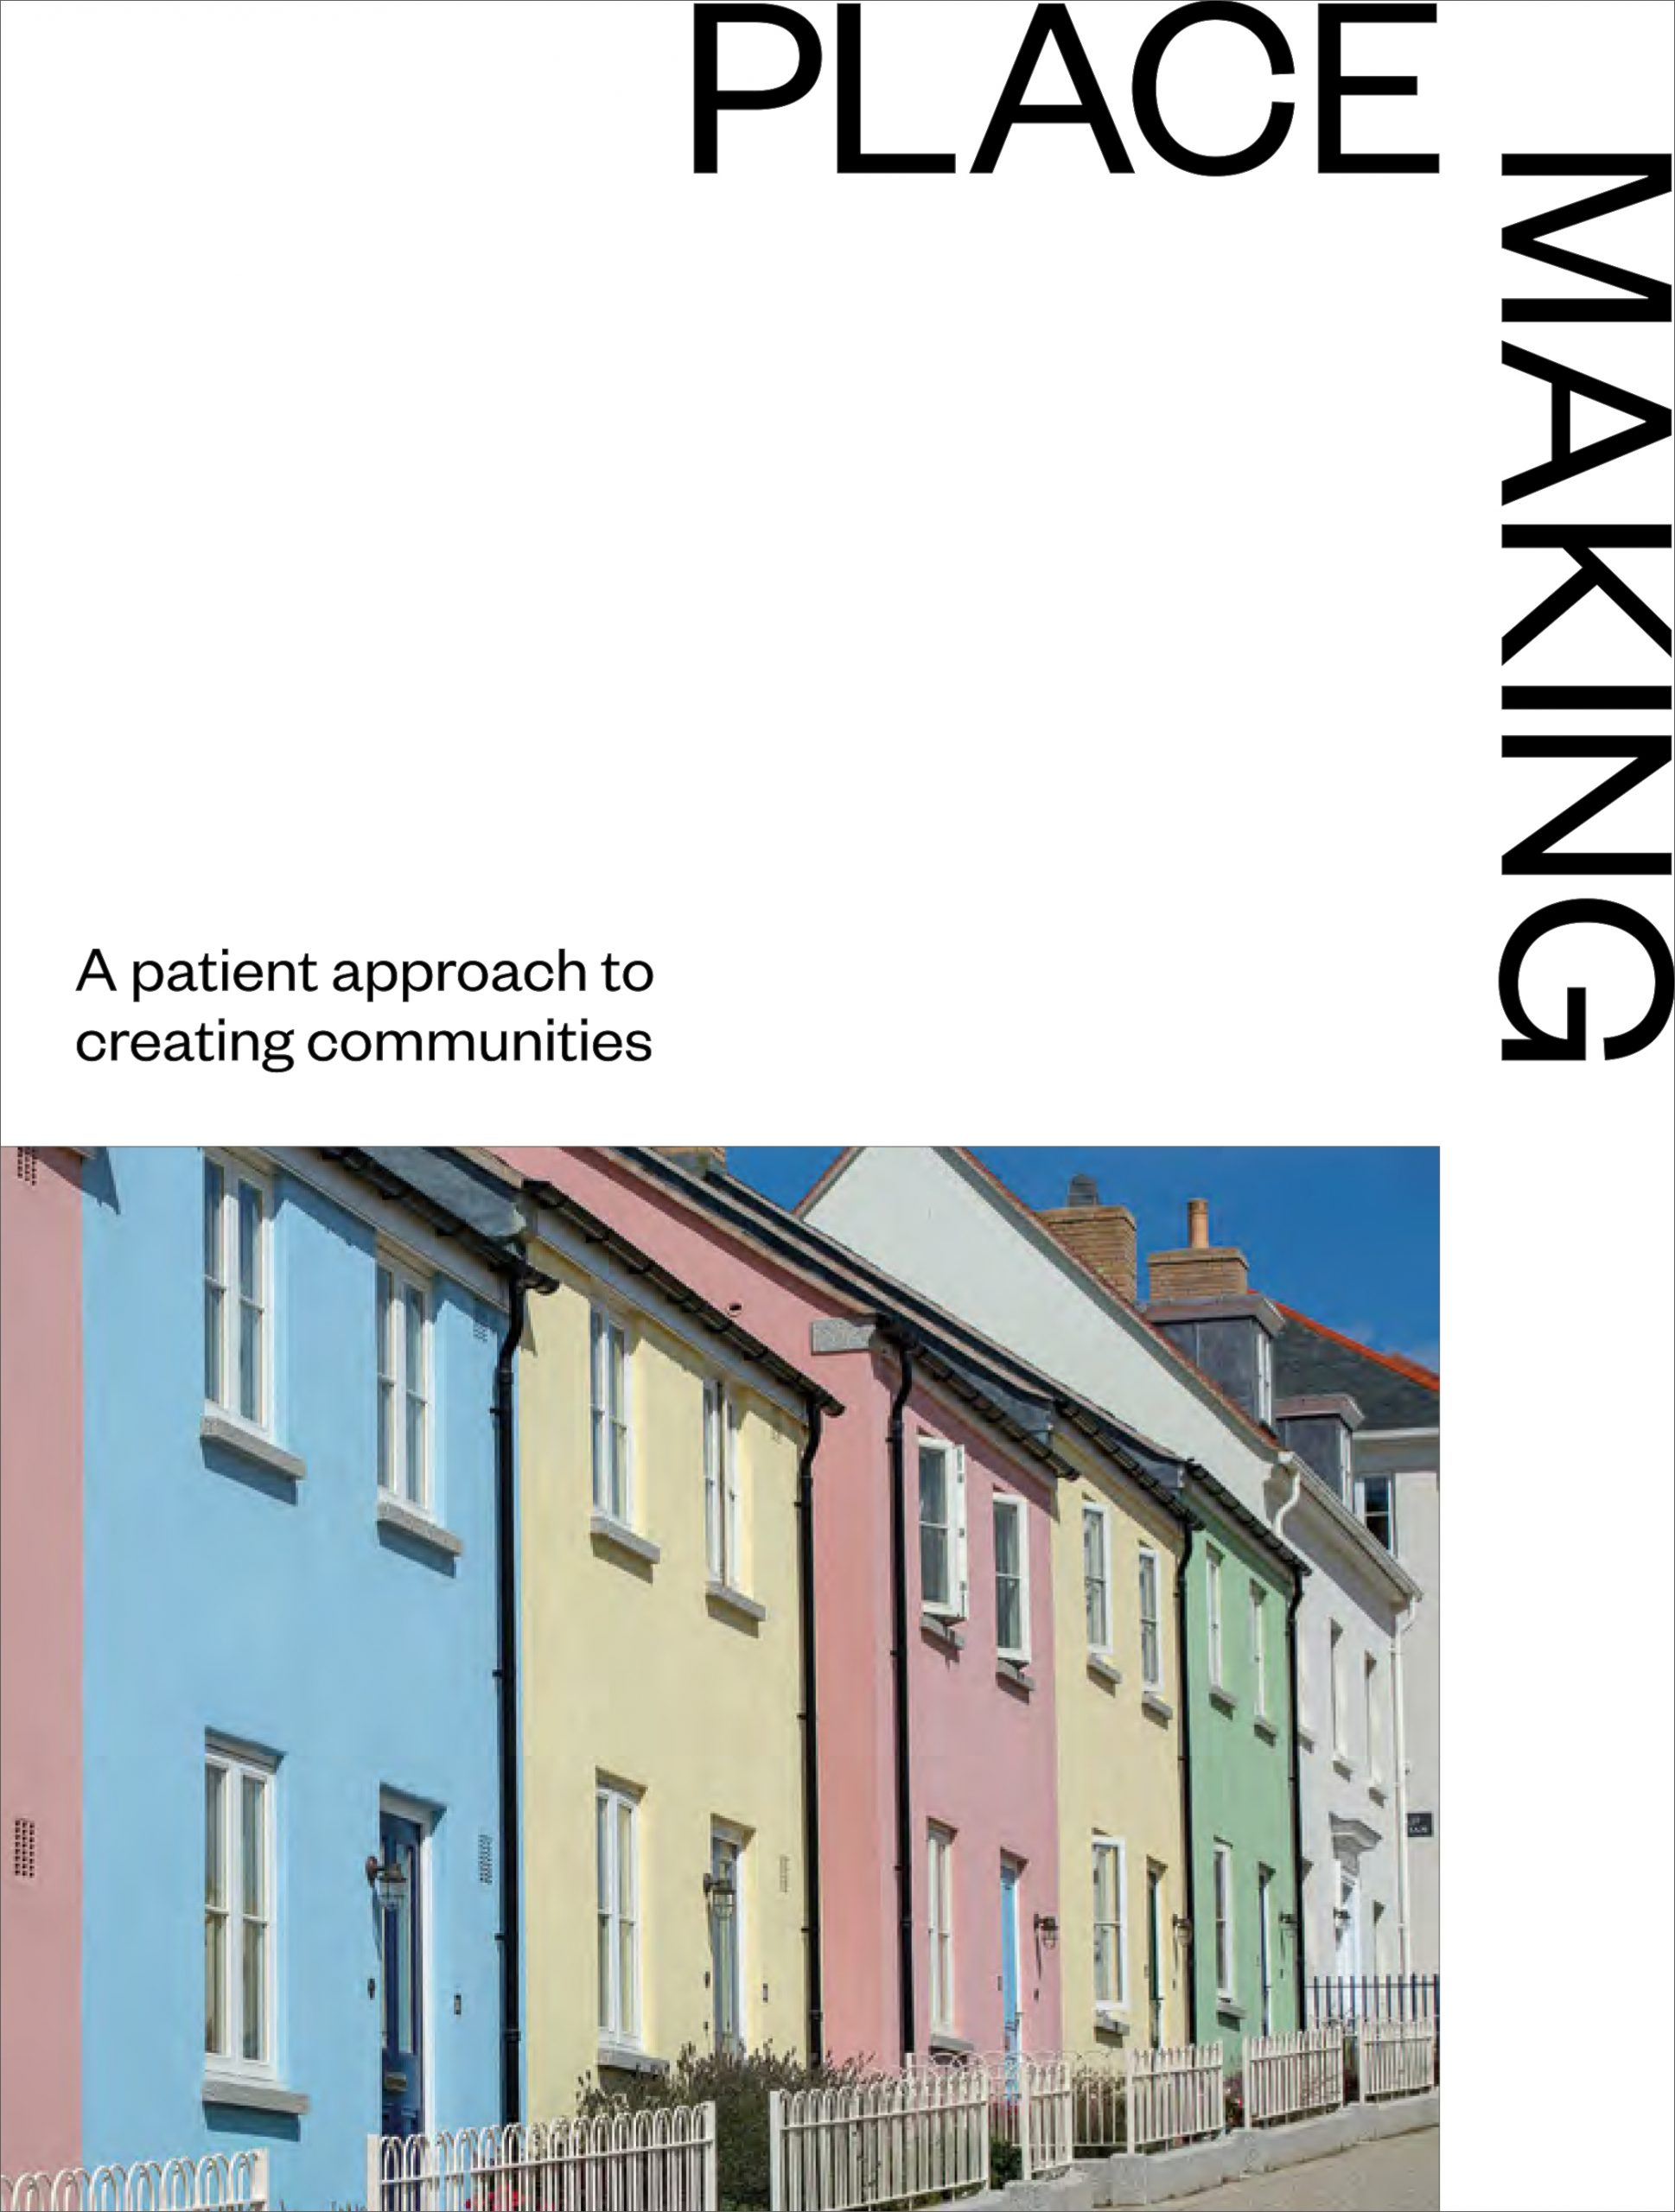 Placemaking: A patient approach to creating communities